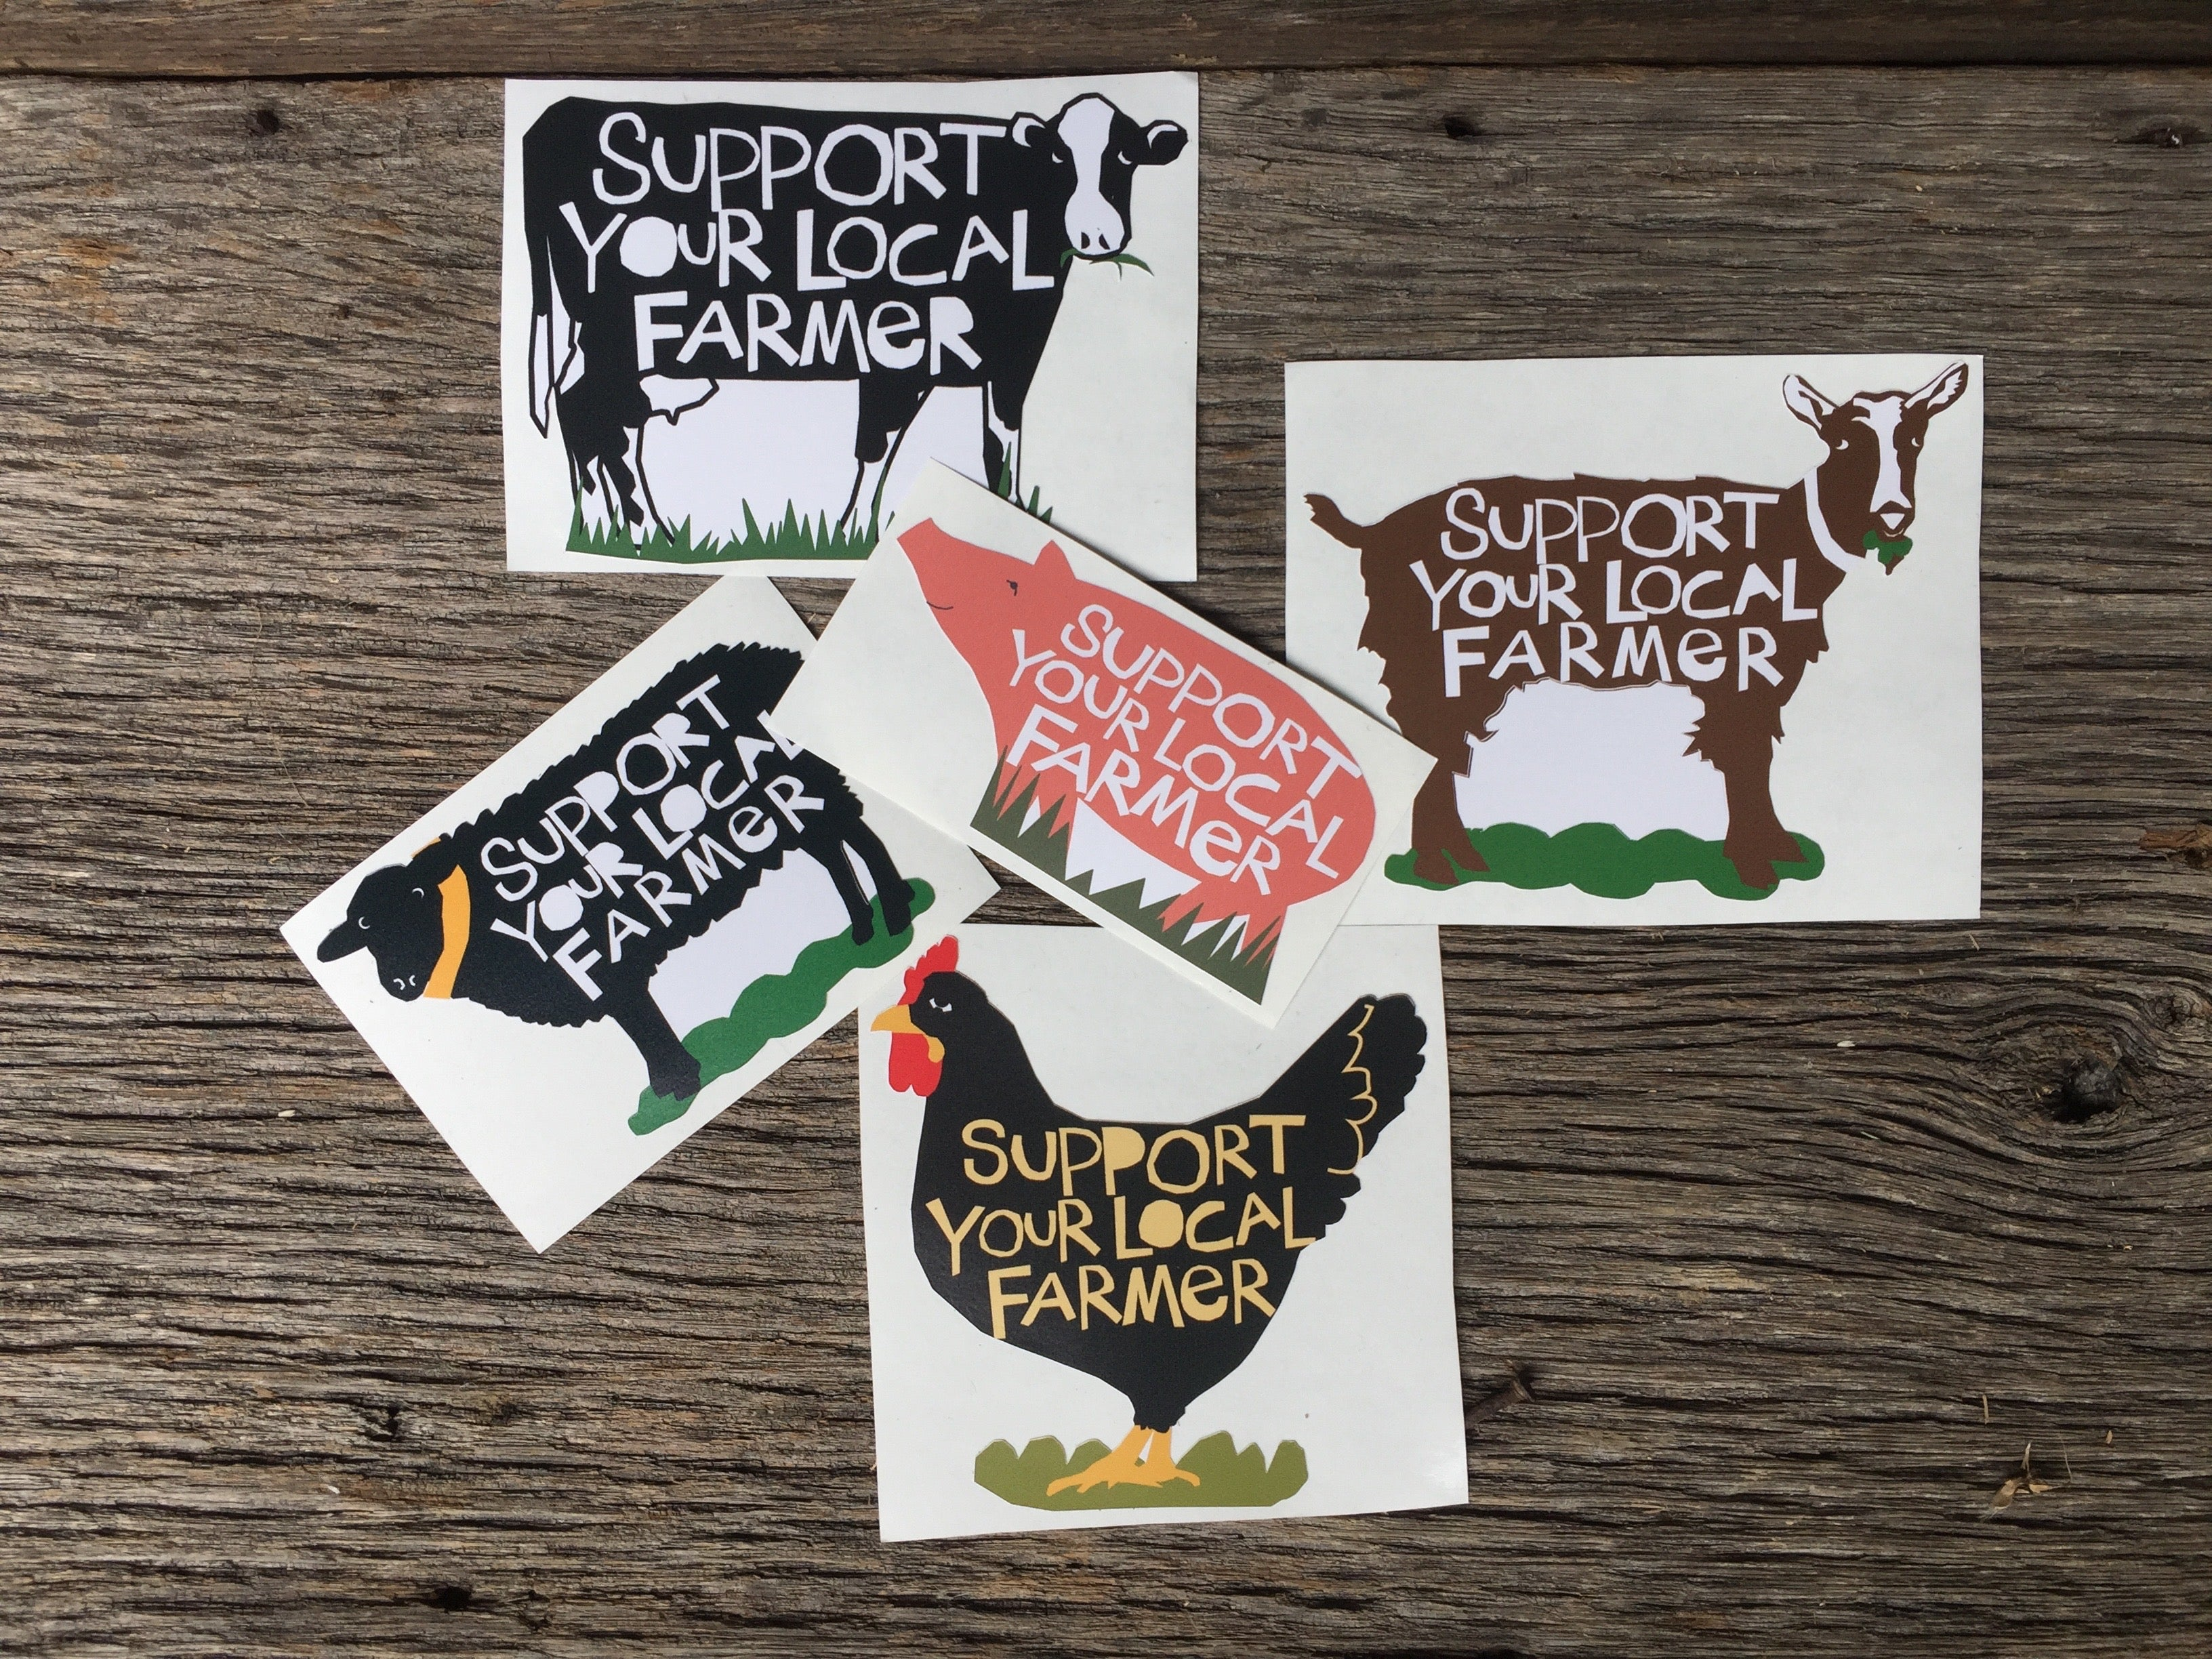 Farm Advocate Stickers and Buttons